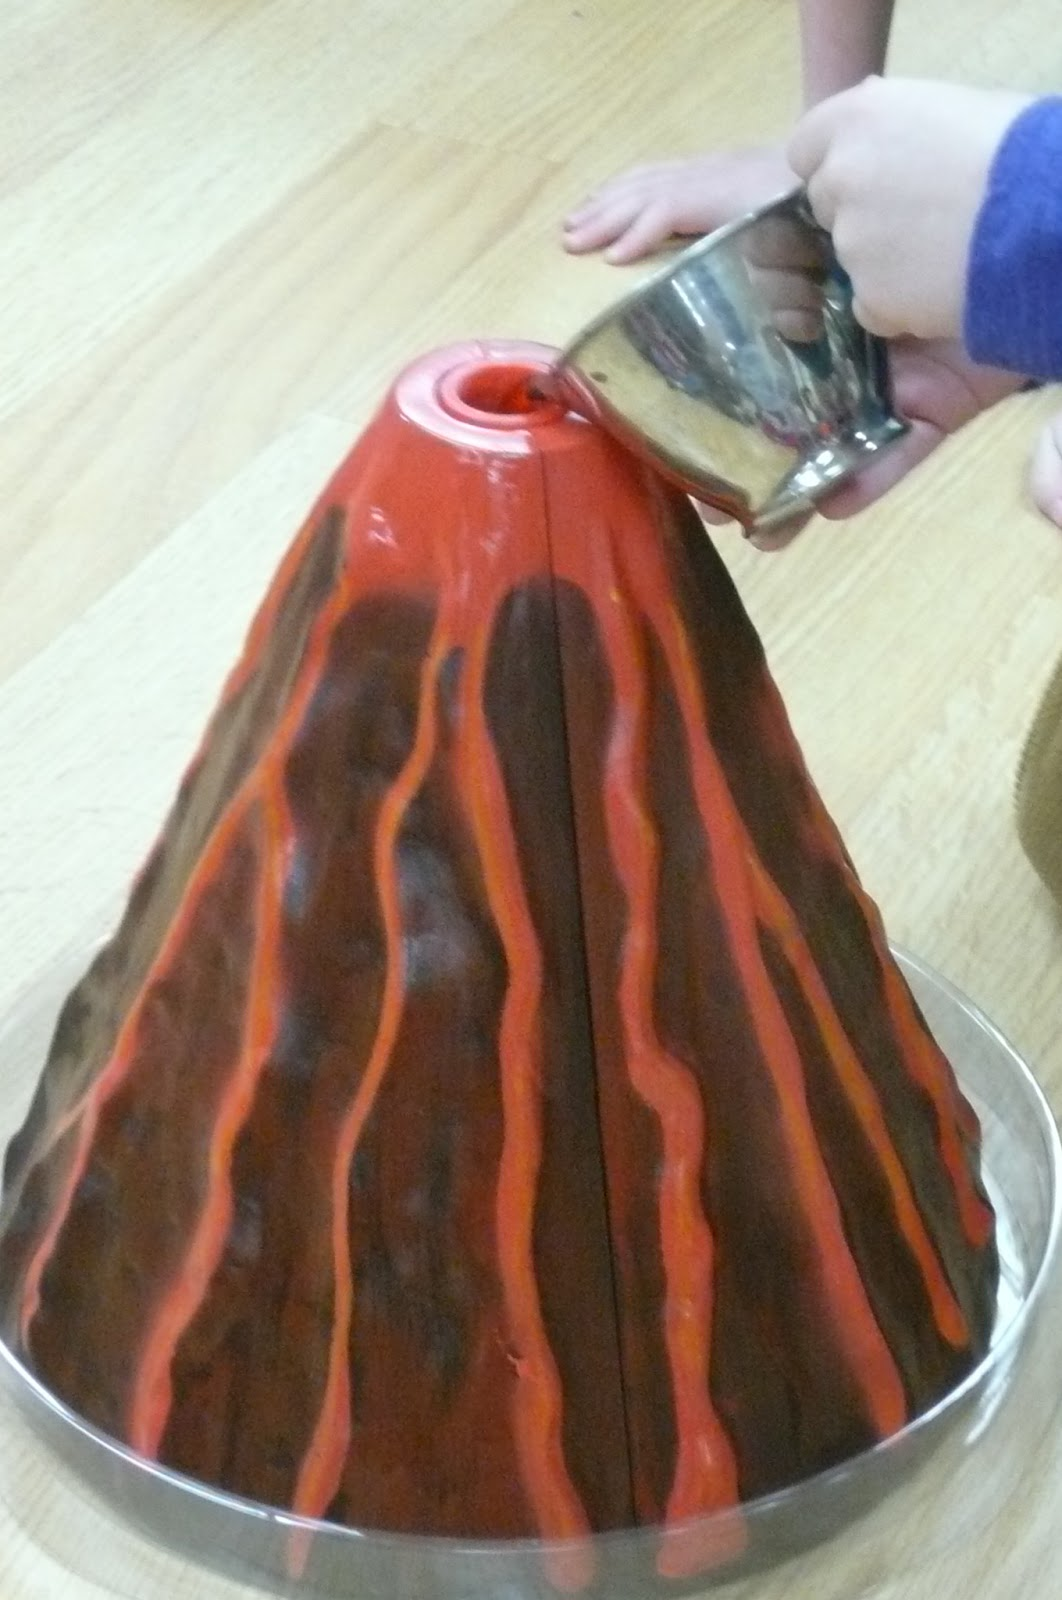 worksheet Baking Soda Volcano montessori teachings volcano then we used baking soda vinegar dish soap and a little red food coloring to erupt the volcano